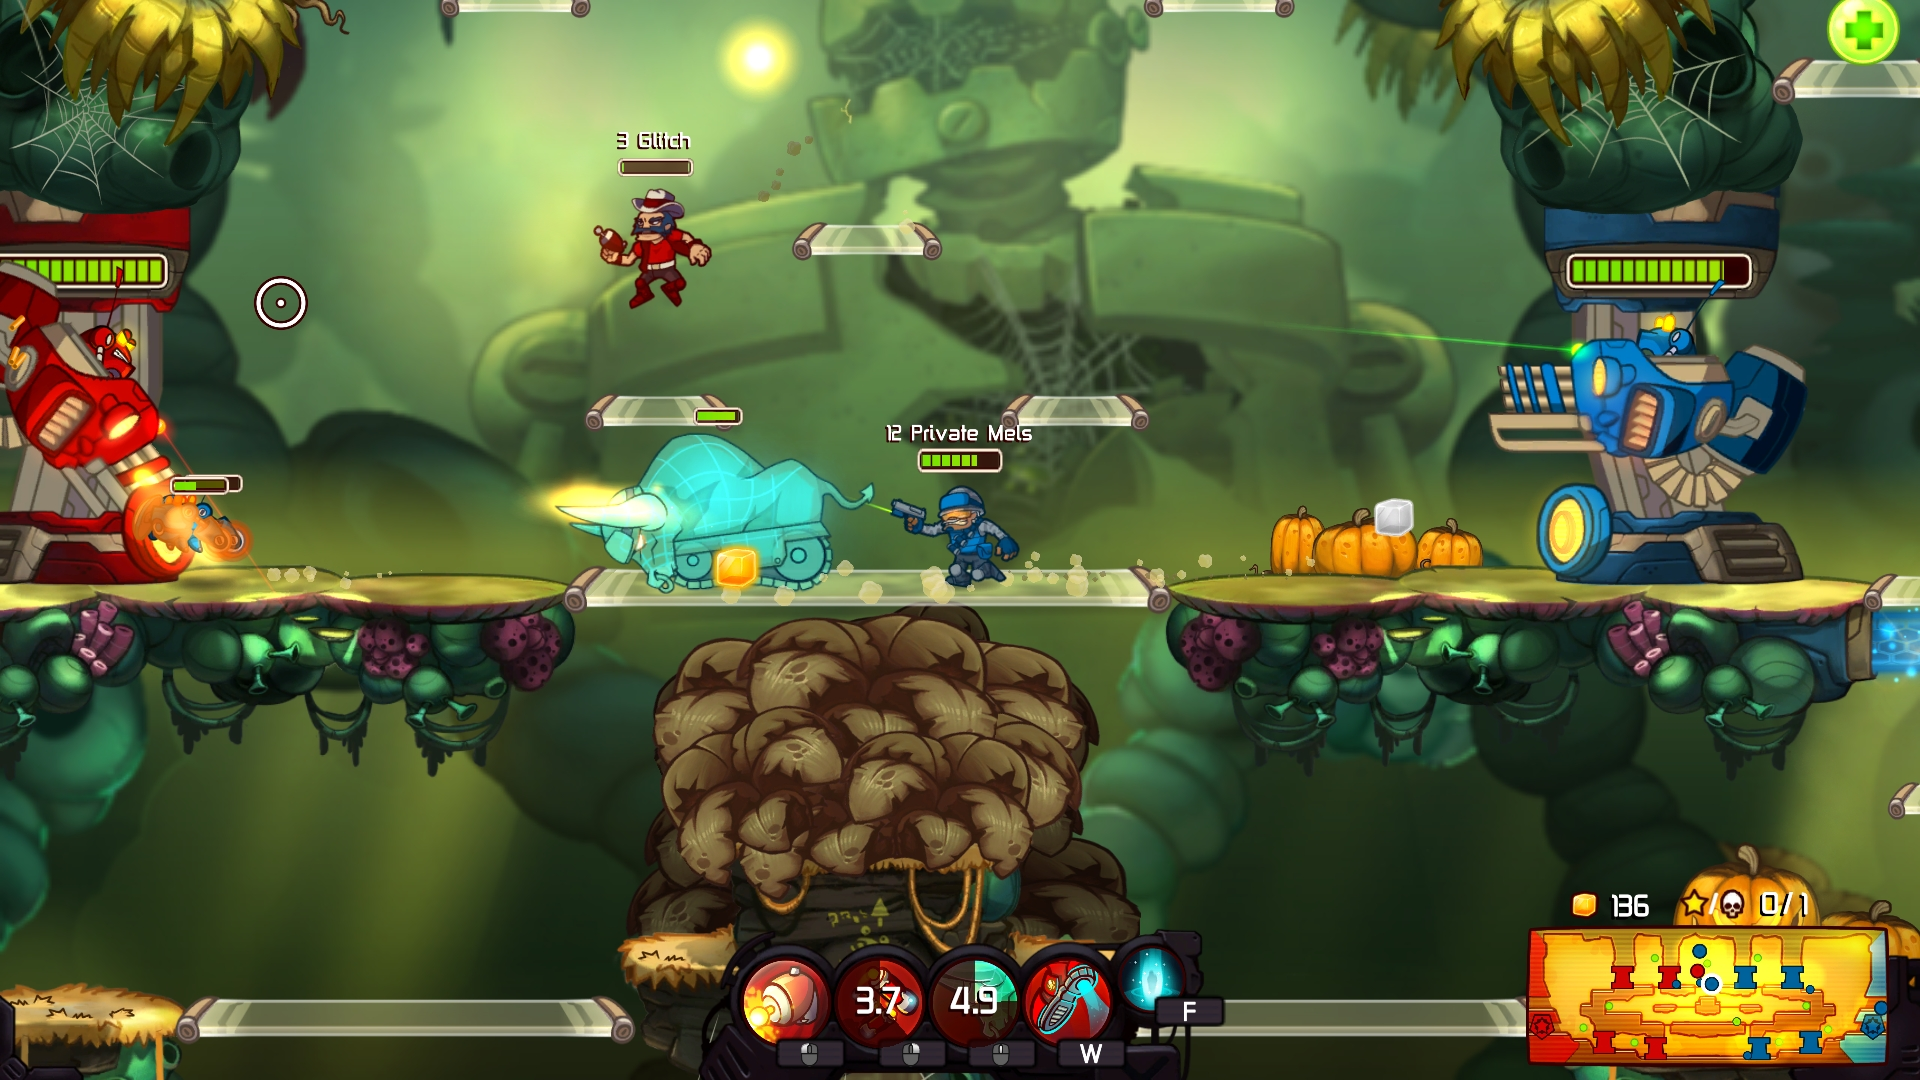 awesomenauts gets charitable with new skin usgamer